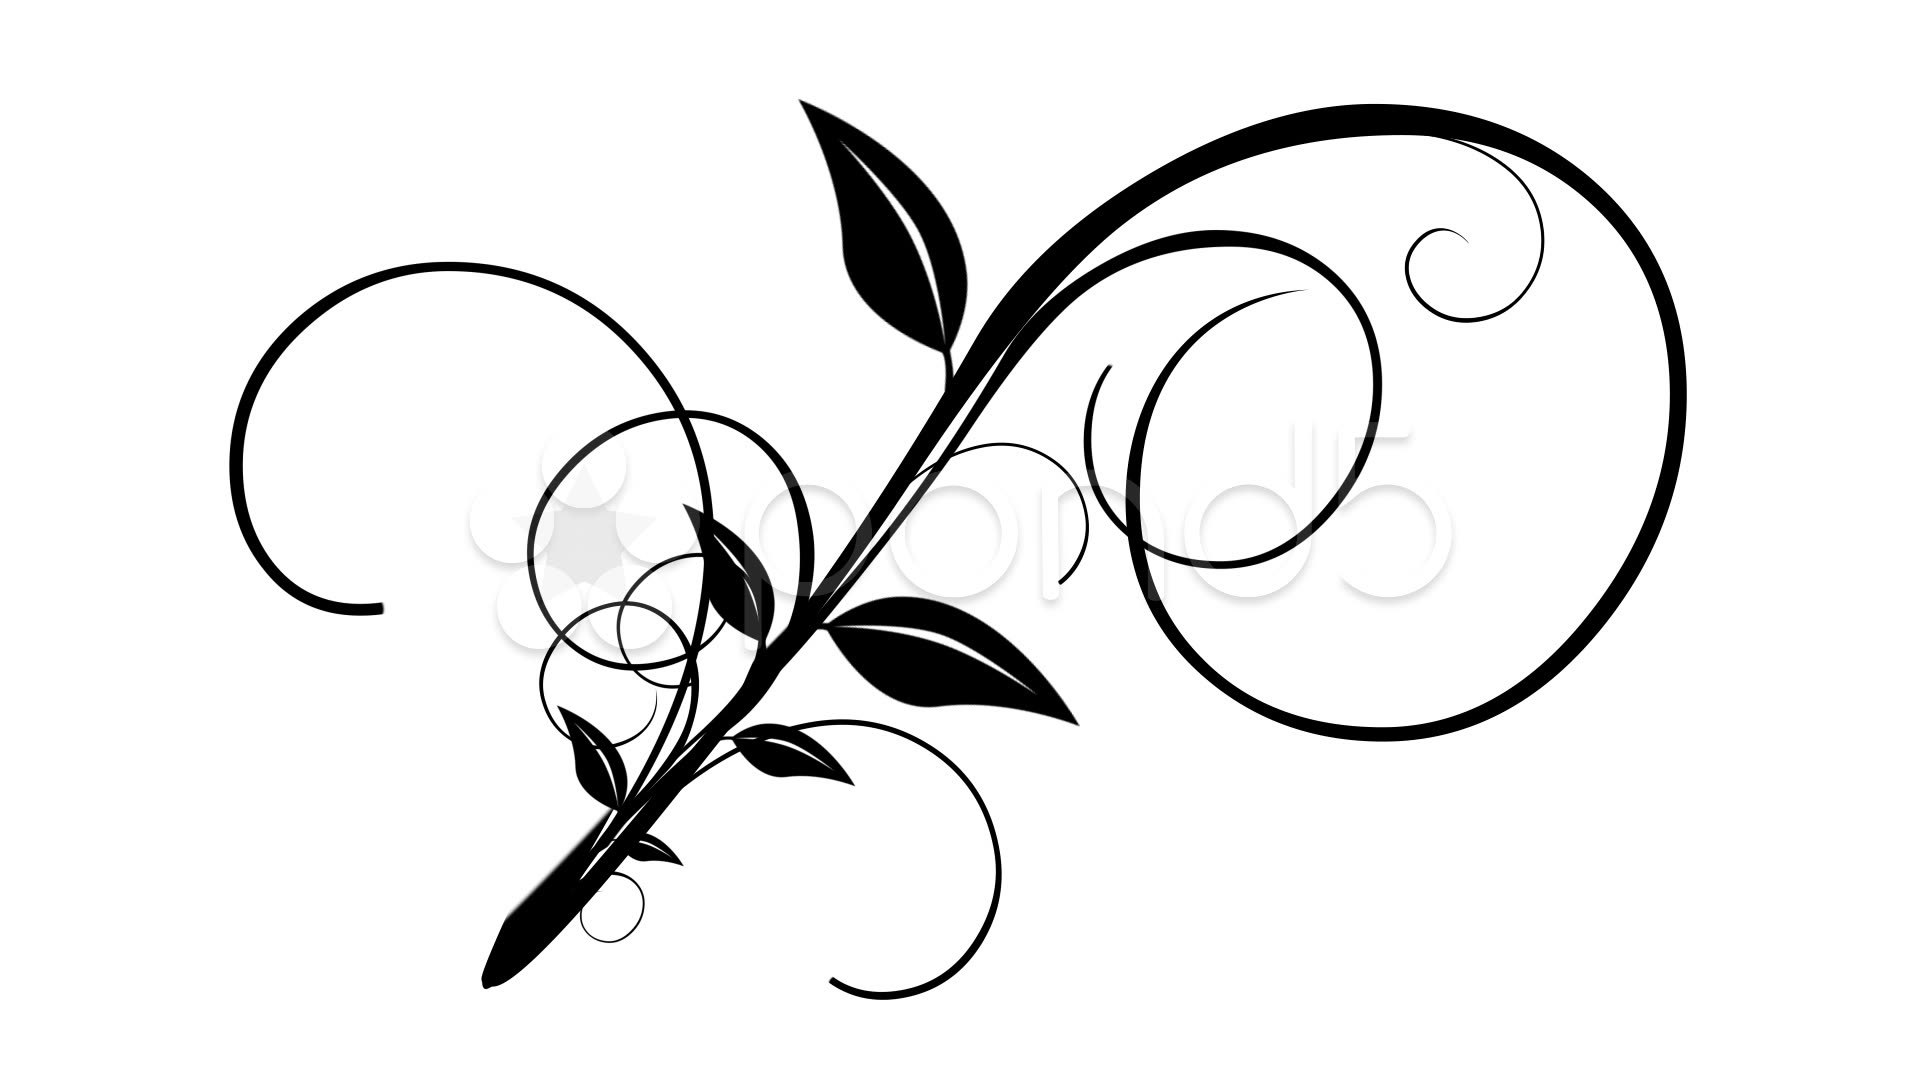 Vine flourish clipart graphic library library Collection of Flourish clipart | Free download best Flourish ... graphic library library